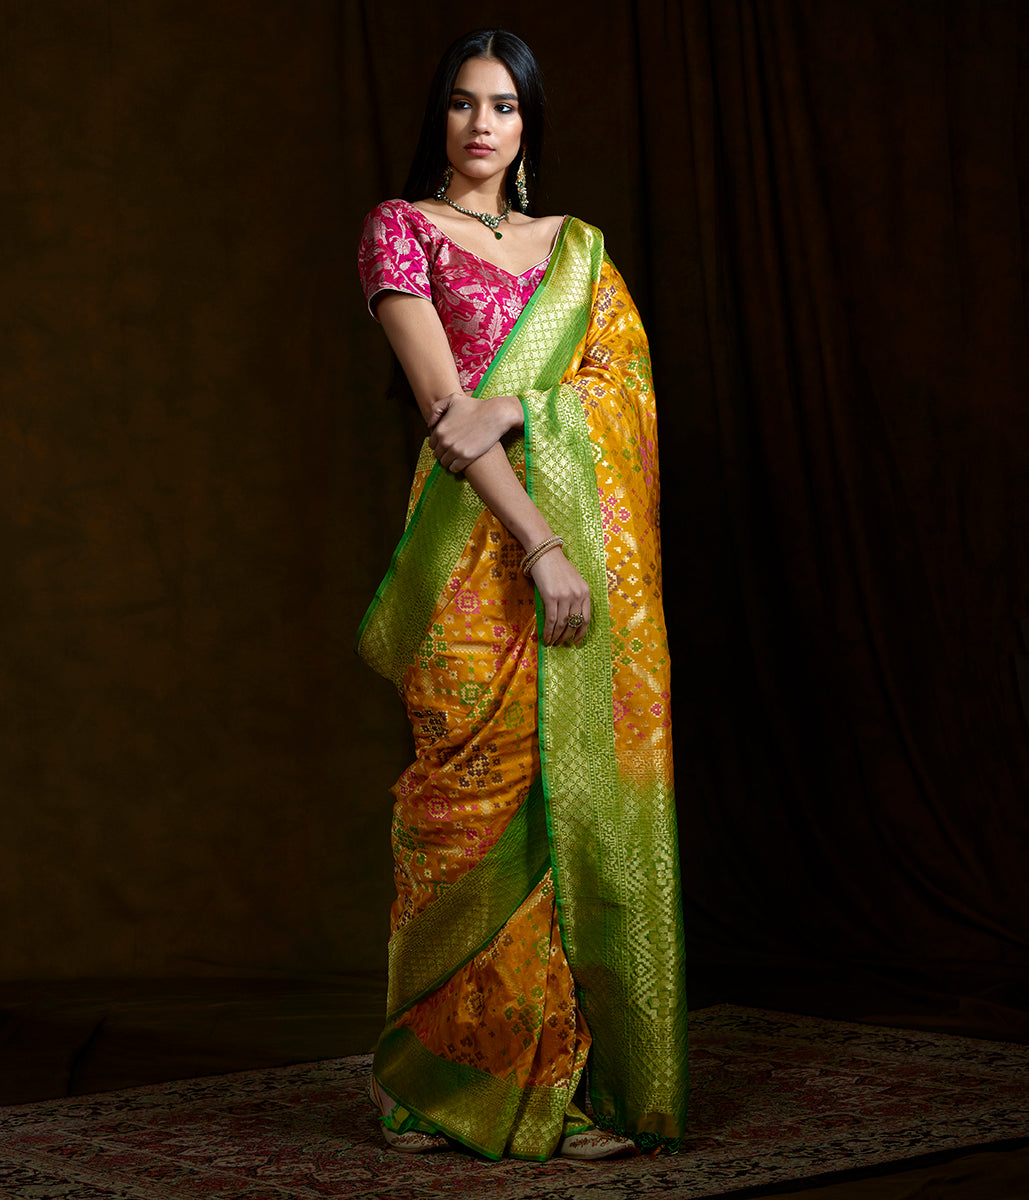 Handwoven Banarasi Patola saree in yellow with a green border